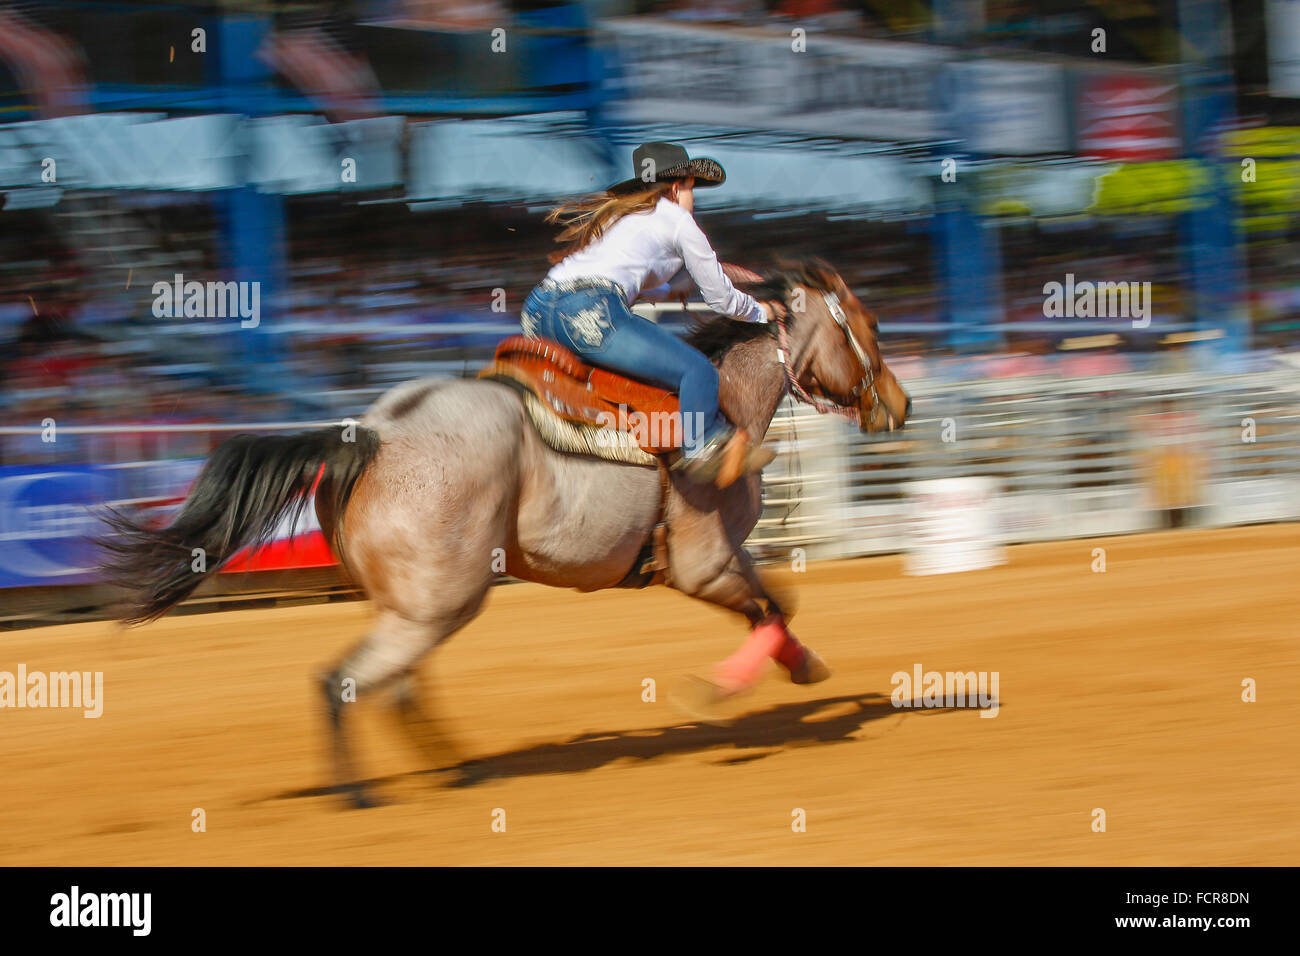 Womans barrel event at Arcadia All-Florida Championship P.R.C.A. Rodeo held in the southwestern Florida town of - Stock Image